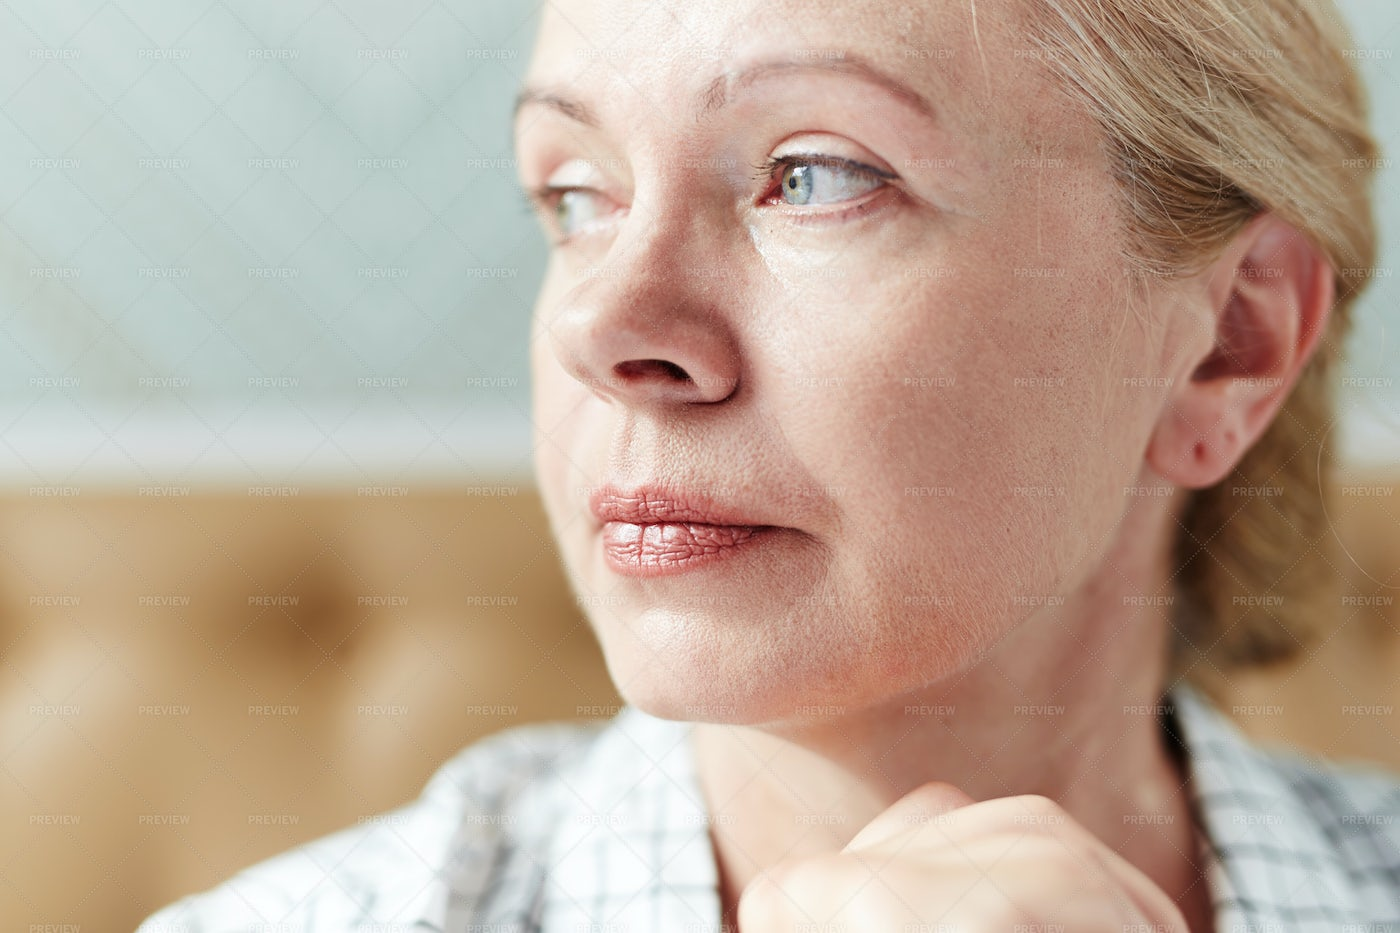 Portrait Of Pensive Middle-Aged Woman: Stock Photos